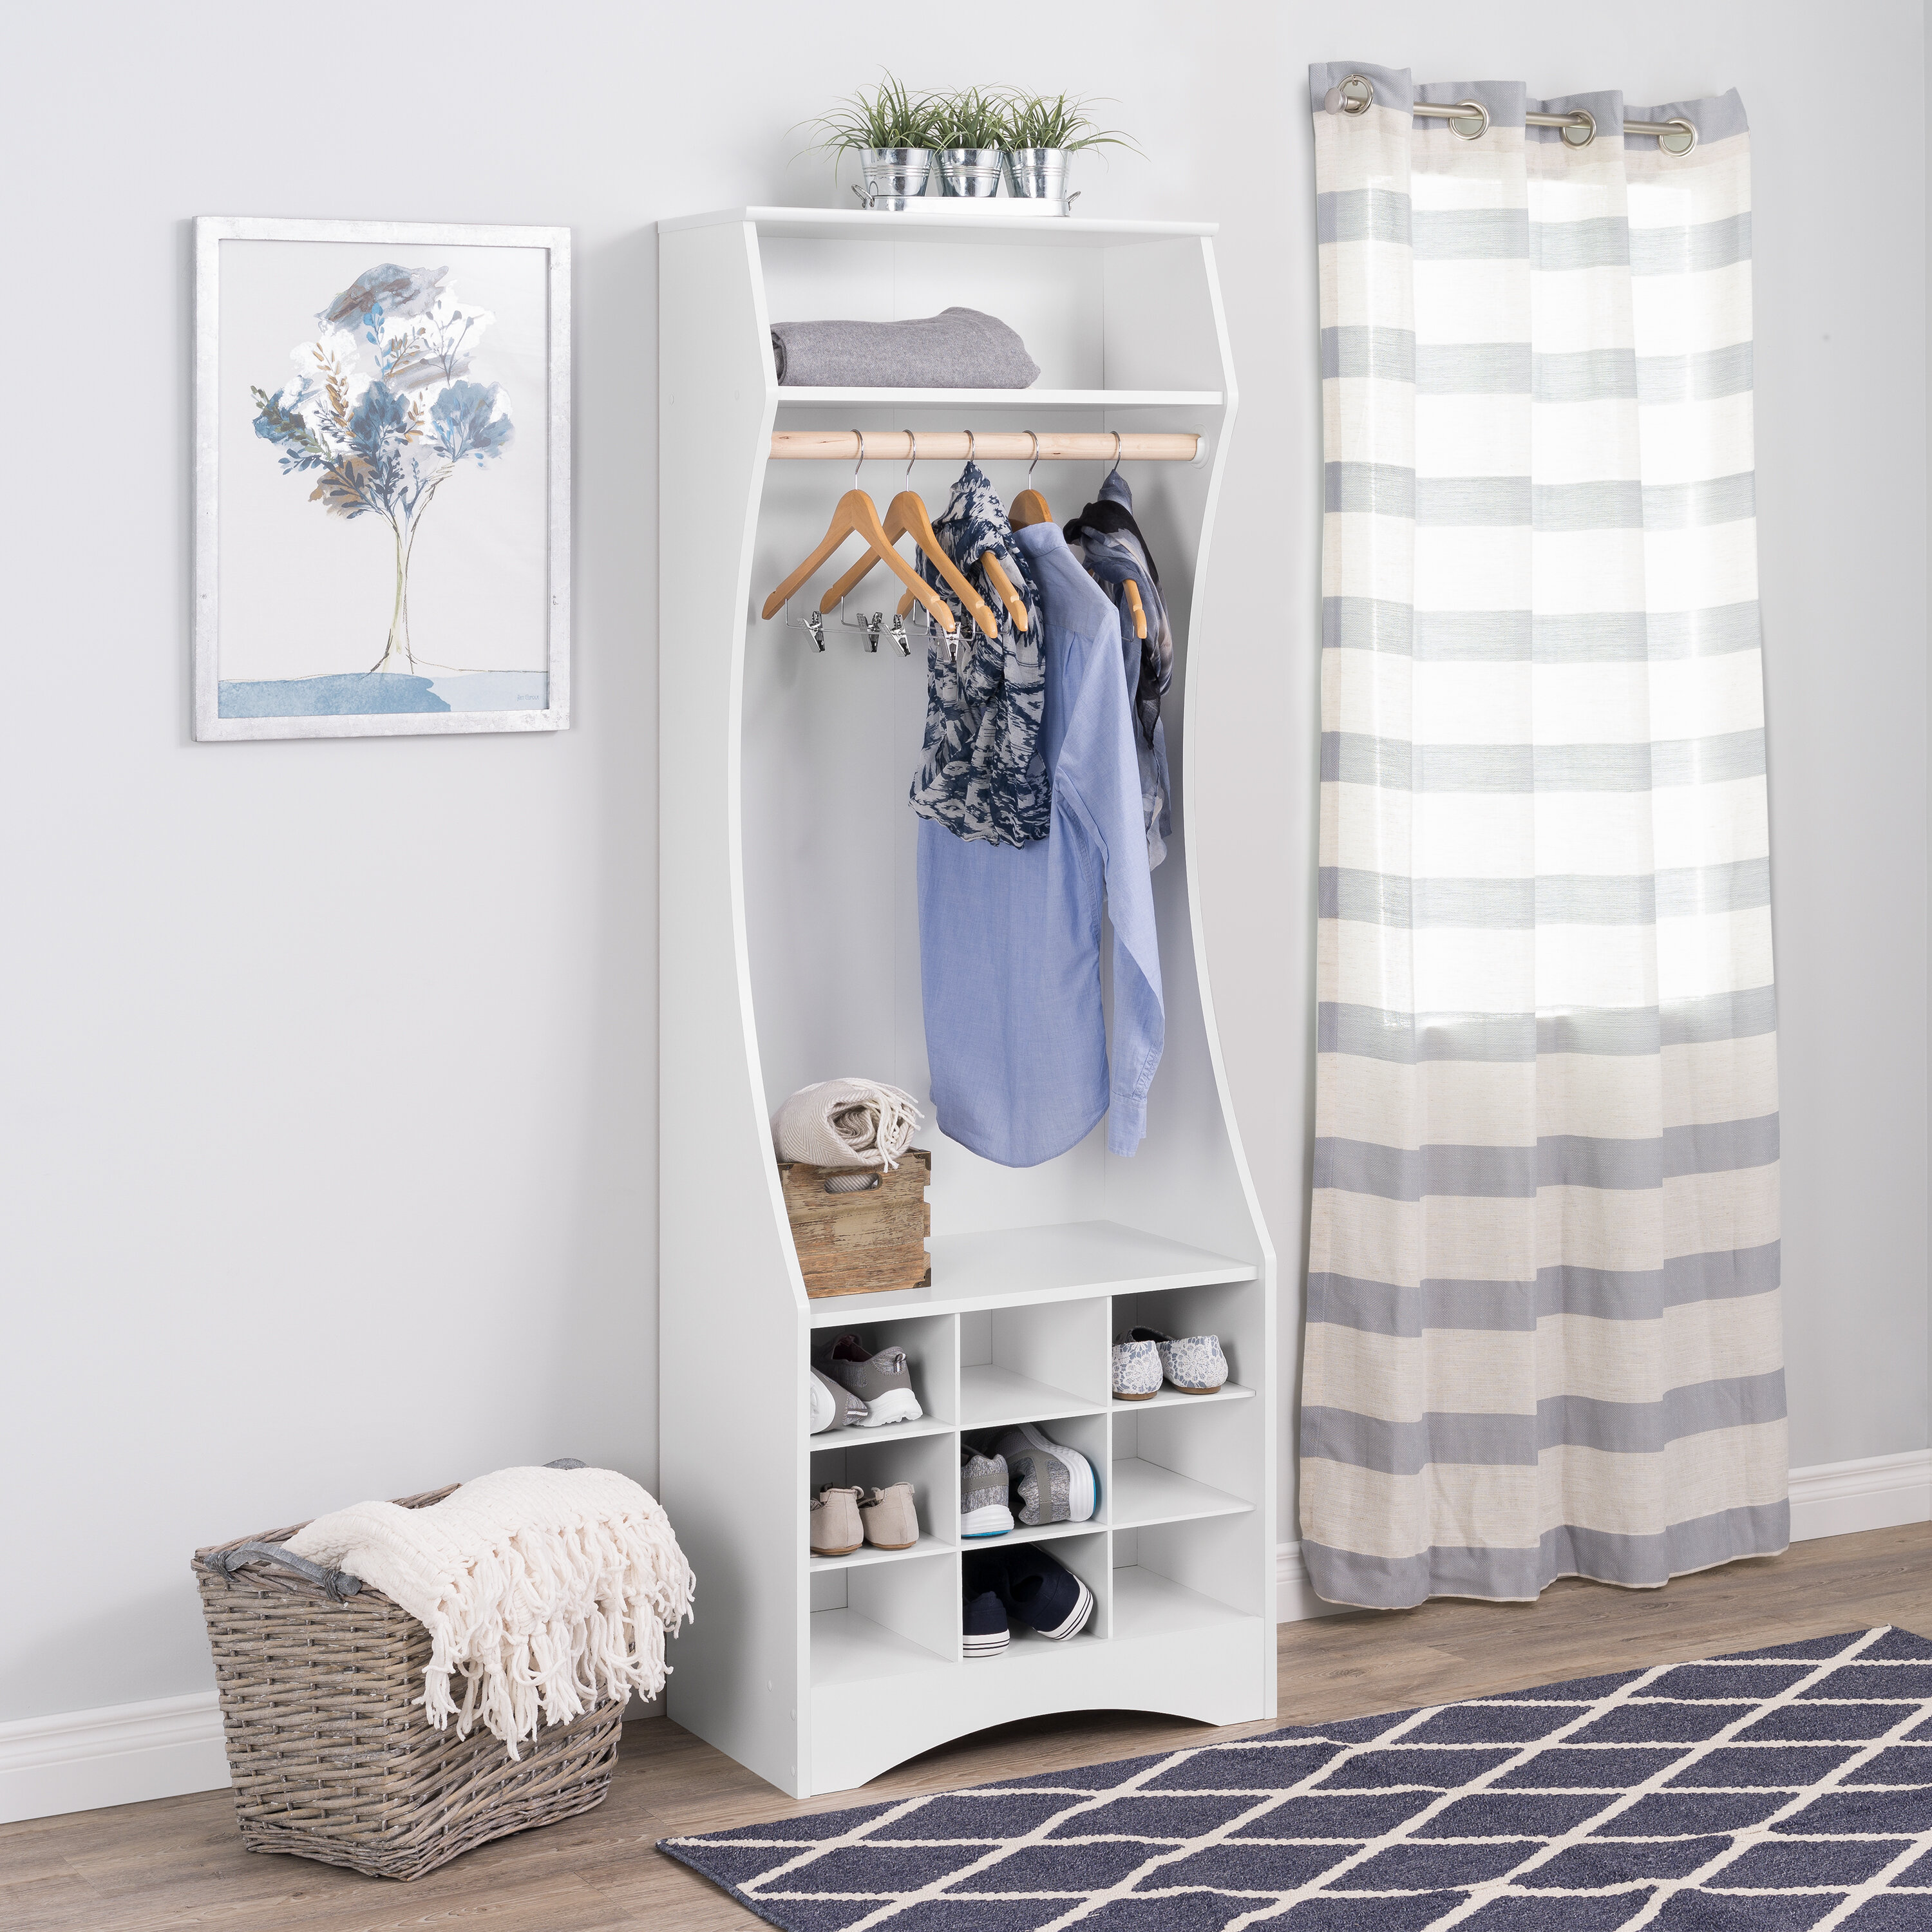 Armoires & Wardrobes You'll Love in 2019 | Wayfair